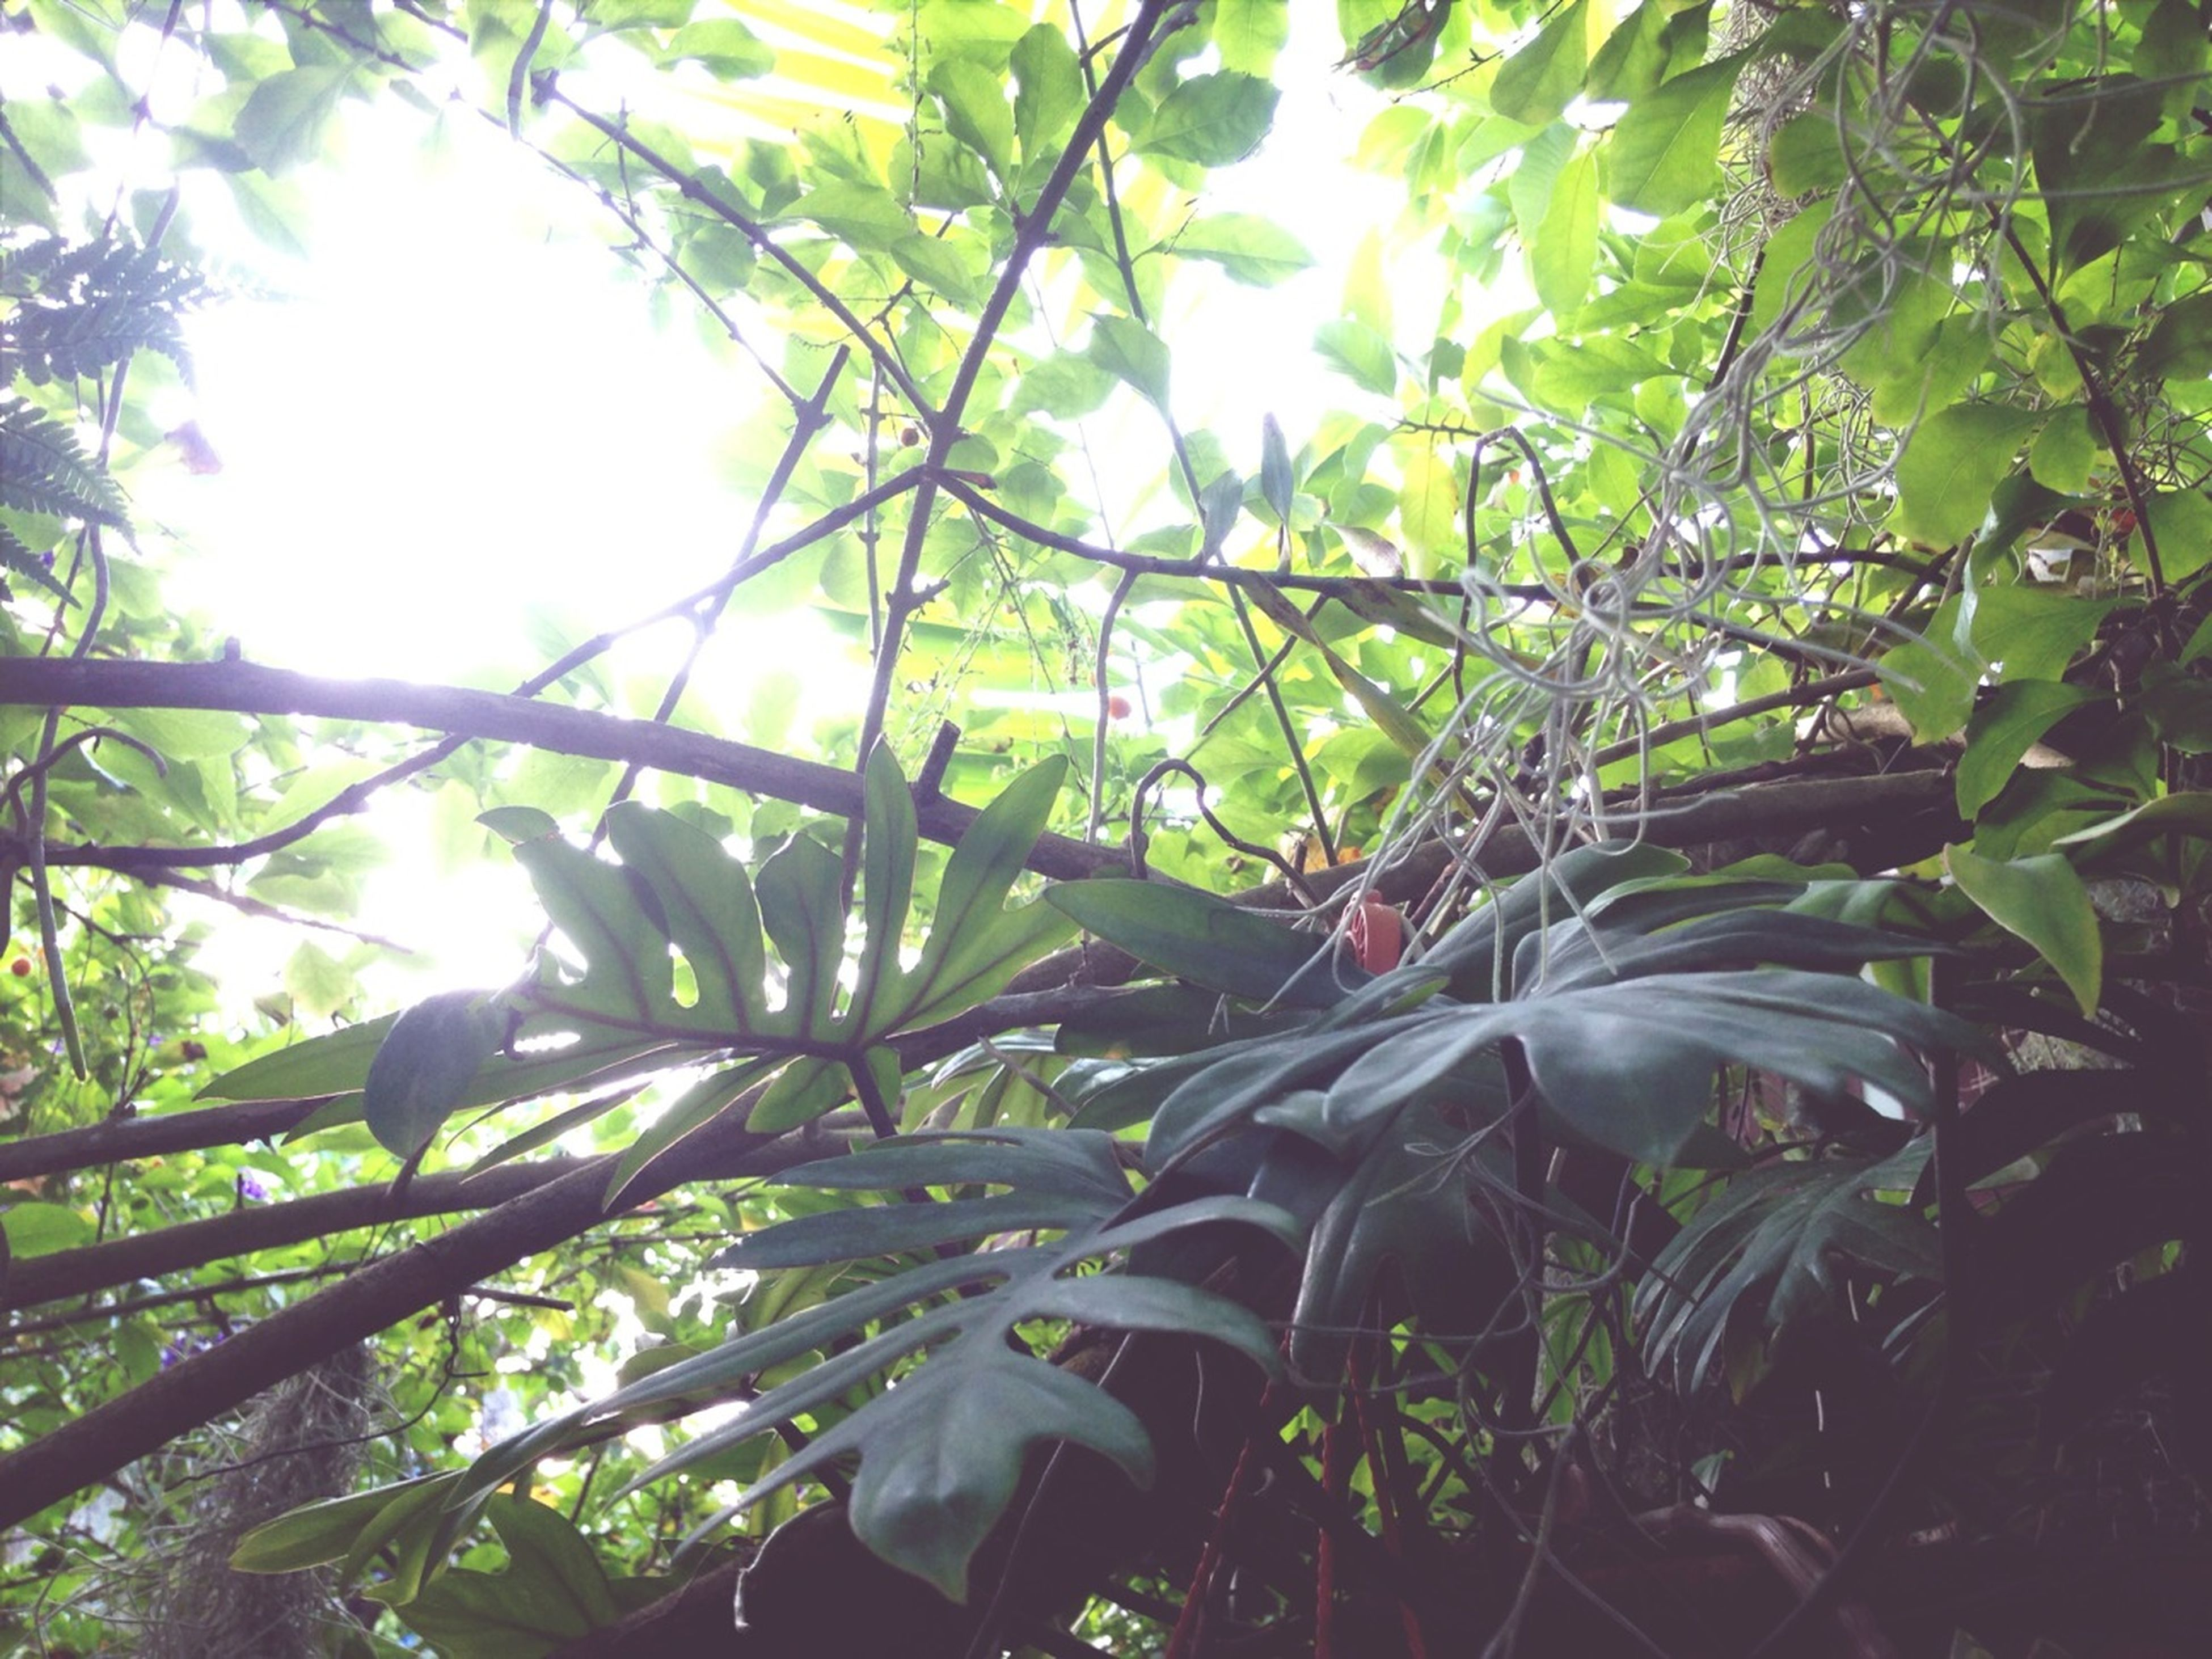 tree, growth, sun, branch, low angle view, leaf, sunlight, sunbeam, nature, lens flare, beauty in nature, green color, day, tranquility, sunny, outdoors, close-up, no people, plant, sky